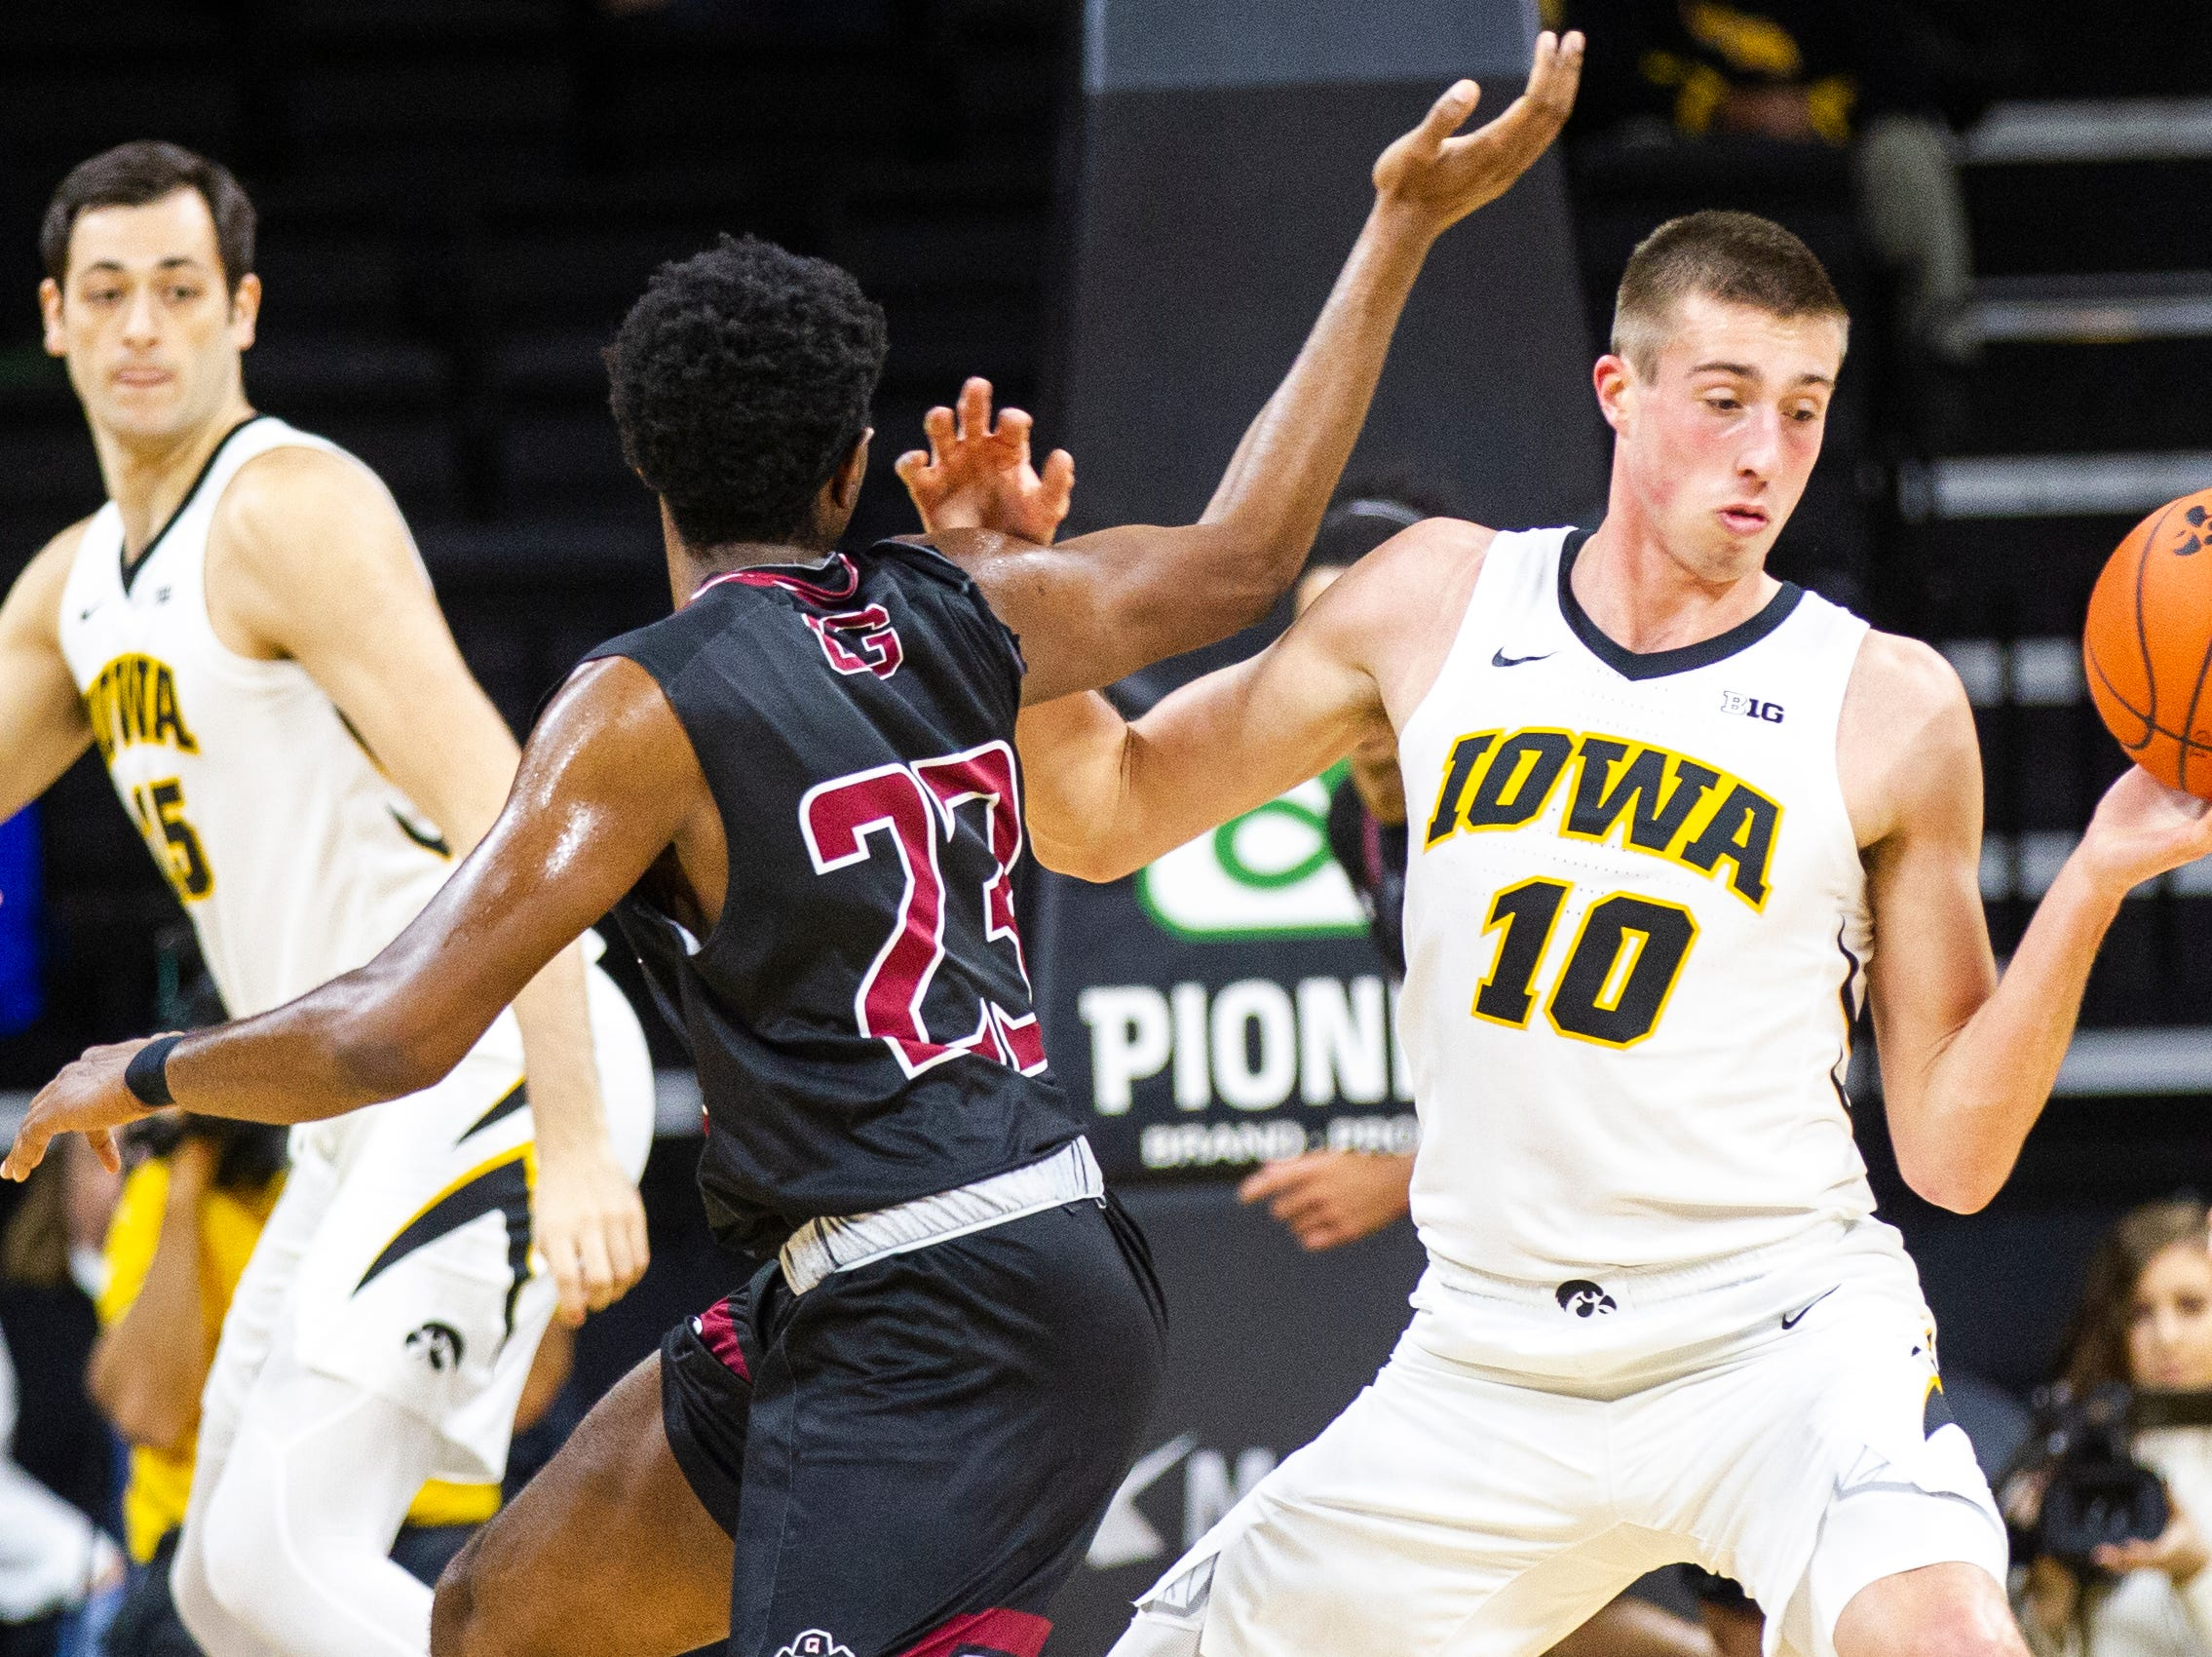 Iowa guard Joe Wieskamp (10) gets a defensive steal during a men's basketball exhibition game on Sunday, Nov. 4, 2018, at Carver-Hawkeye Arena in Iowa City.